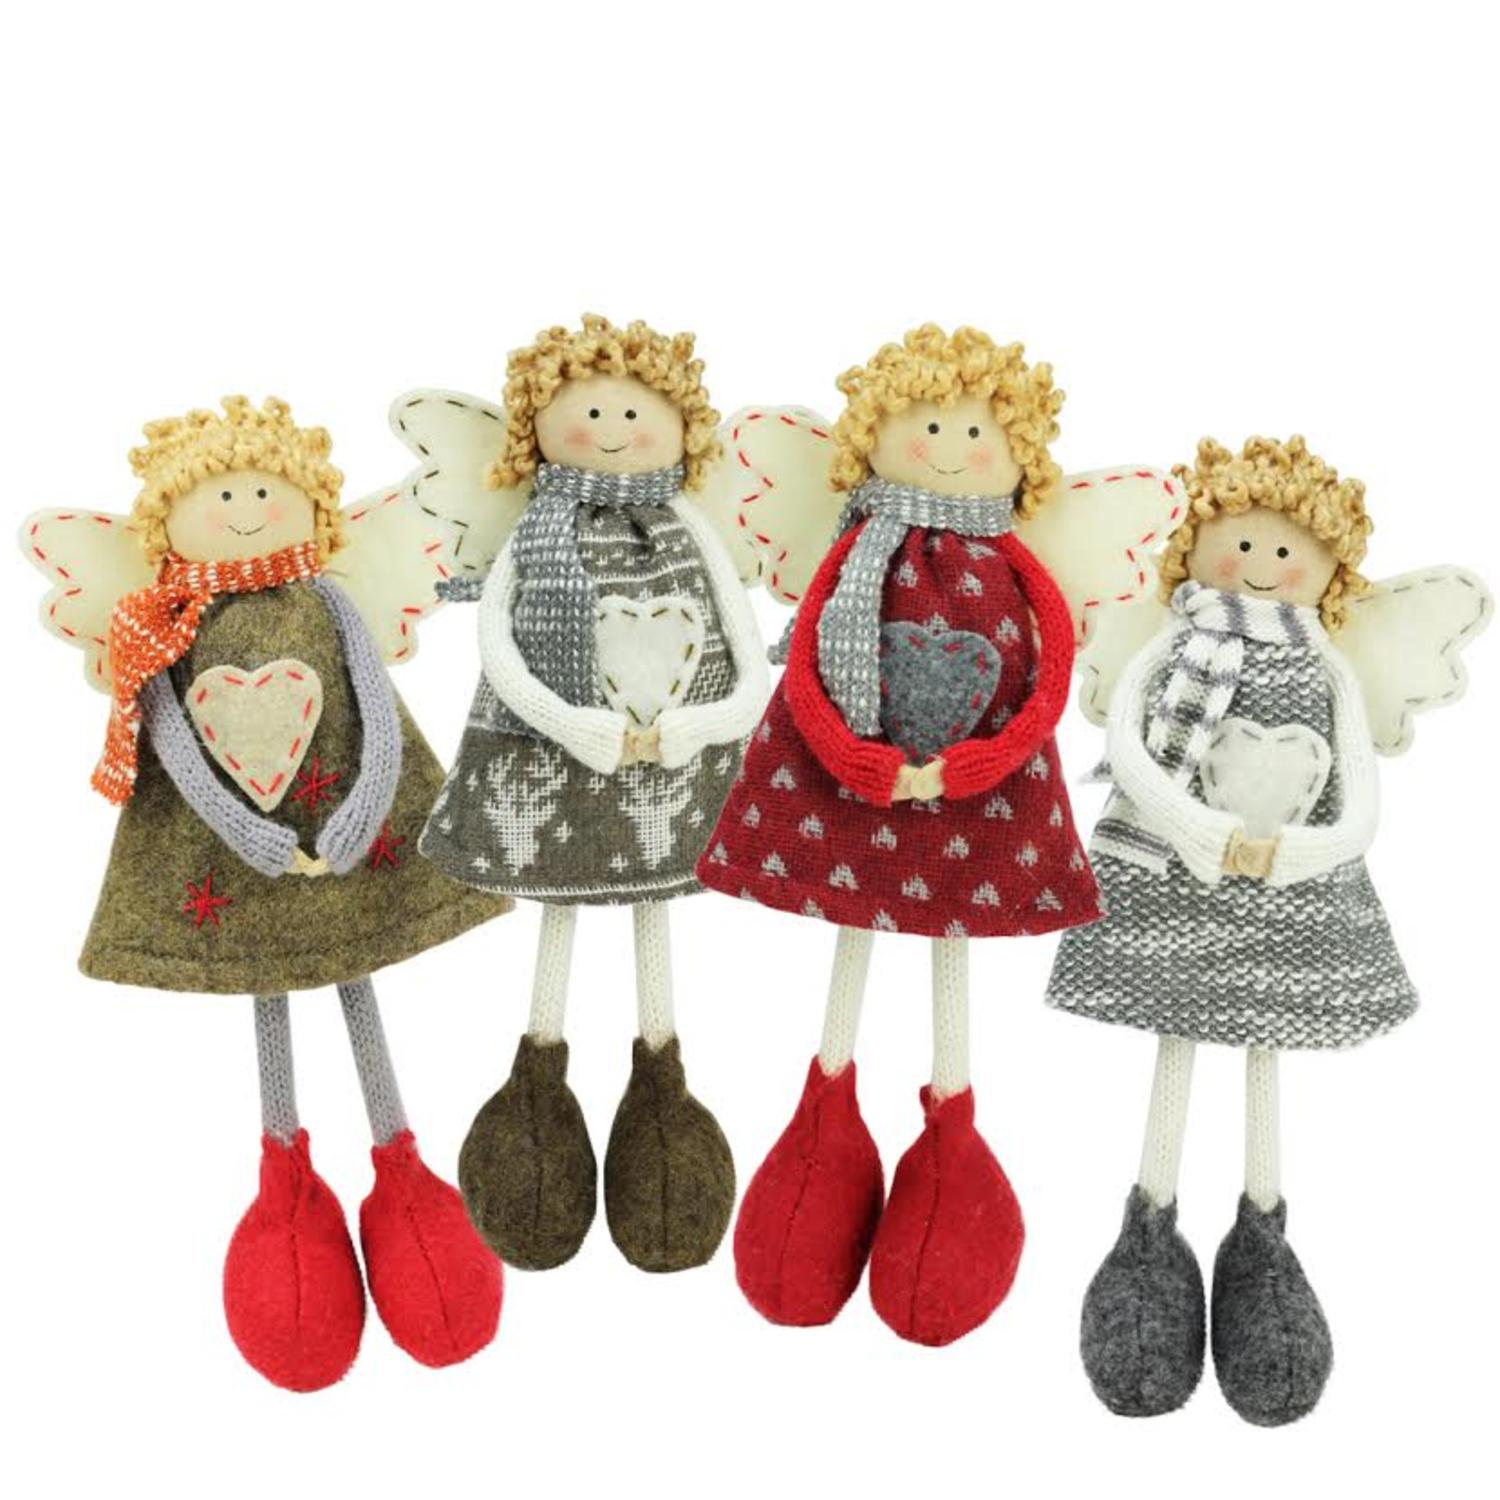 ''Set of 4 Colorful HOLIDAY Angel Sisters Standing Christmas Decorations 9''''''